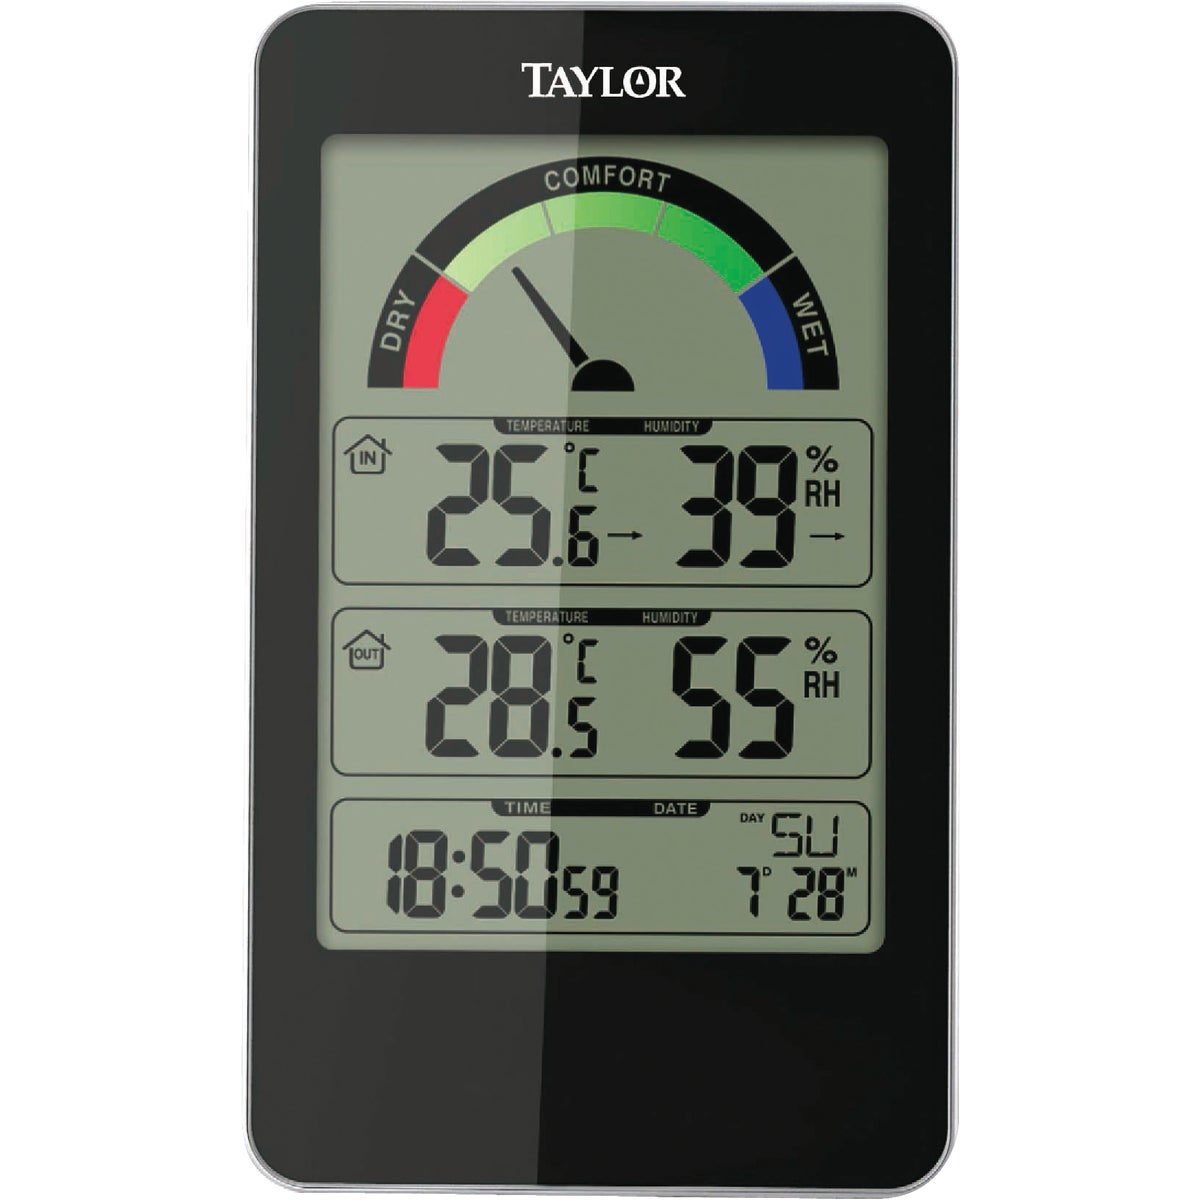 Item 652504, Taylor 1732 thermometer/hygrometer constantly monitors the temperature and humidity inside your home. Features a 5-level humidity comfort level indicator.